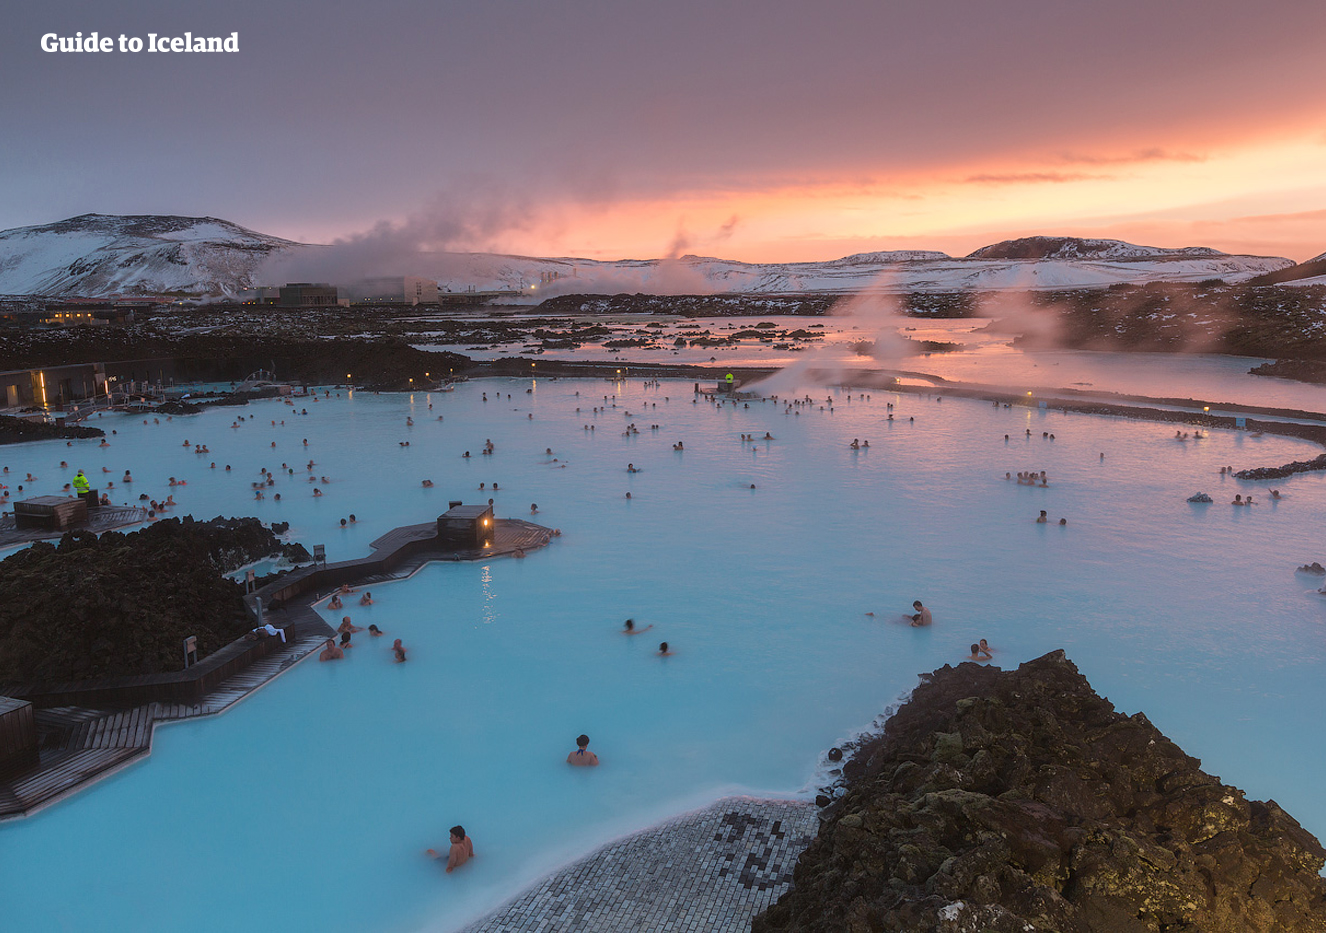 10 Day Summer Package | Guided Tour Around Iceland with Free Days in Reykjavik - day 1